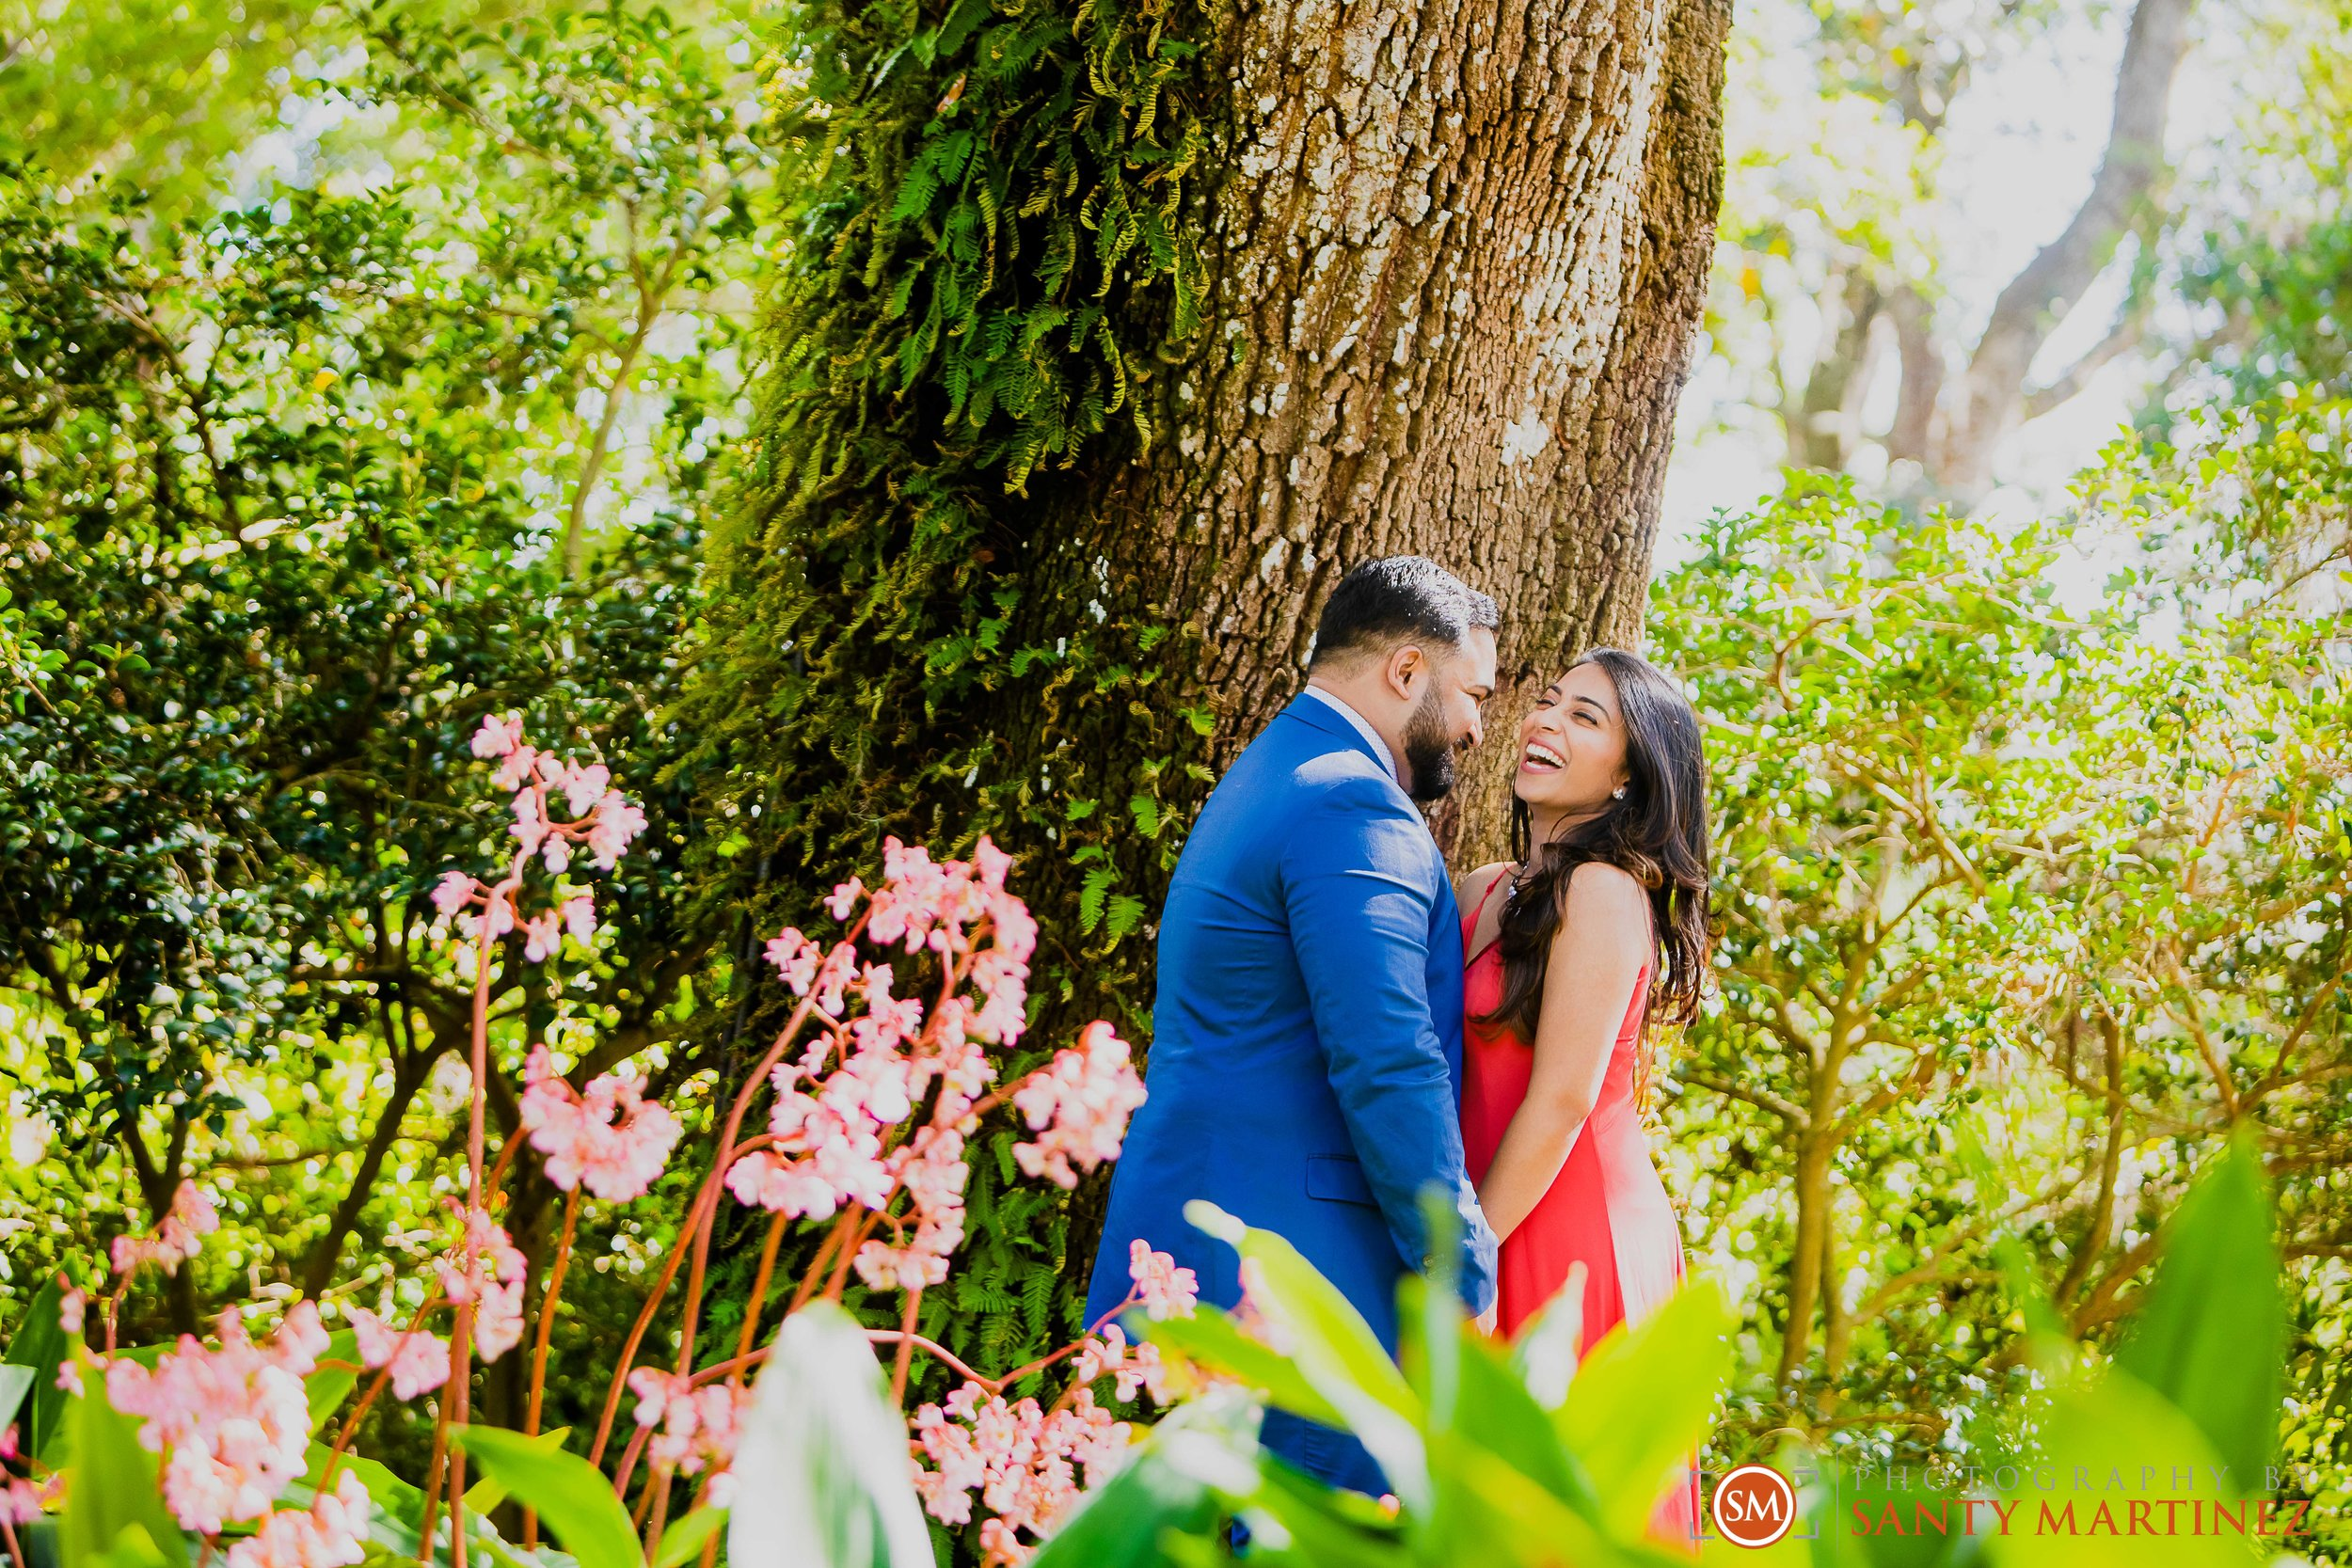 Engagement Session Bok Tower Gardens - Santy Martinez Photography-8.jpg